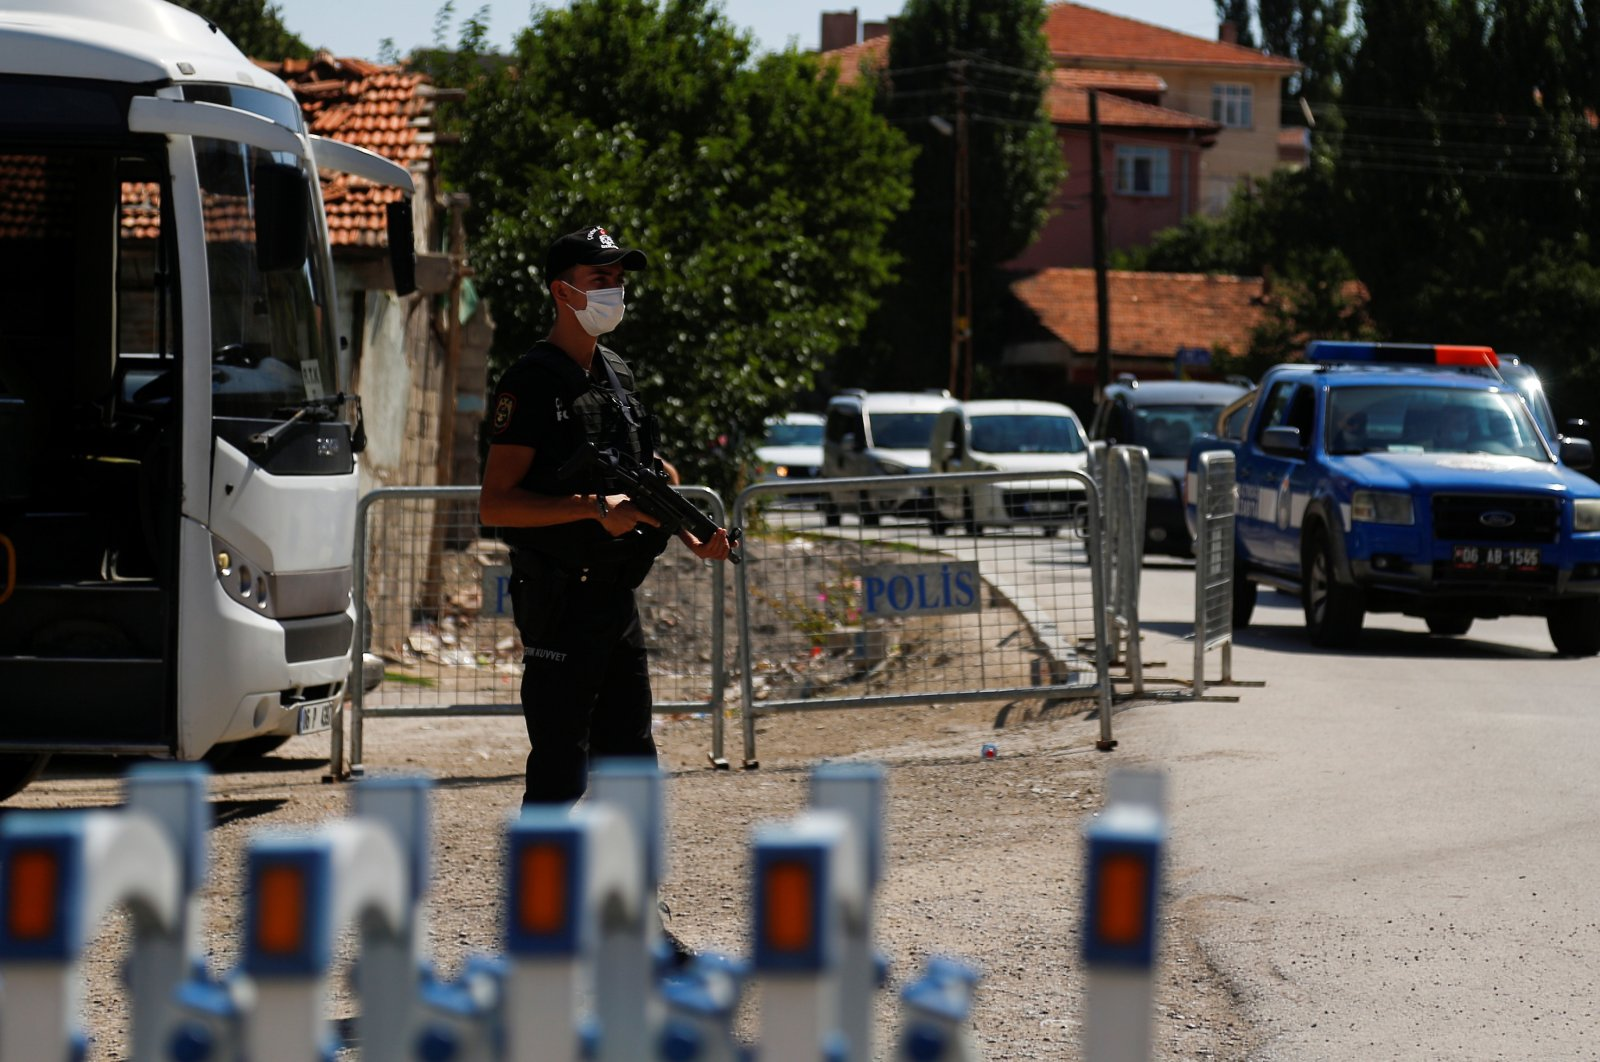 A Turkish riot police member stands guard at a checkpoint on a road which leads to a neighborhood where many Syrian refugees have houses and shops, in Ankara, Turkey, Aug. 12, 2021. (REUTERS Photo)